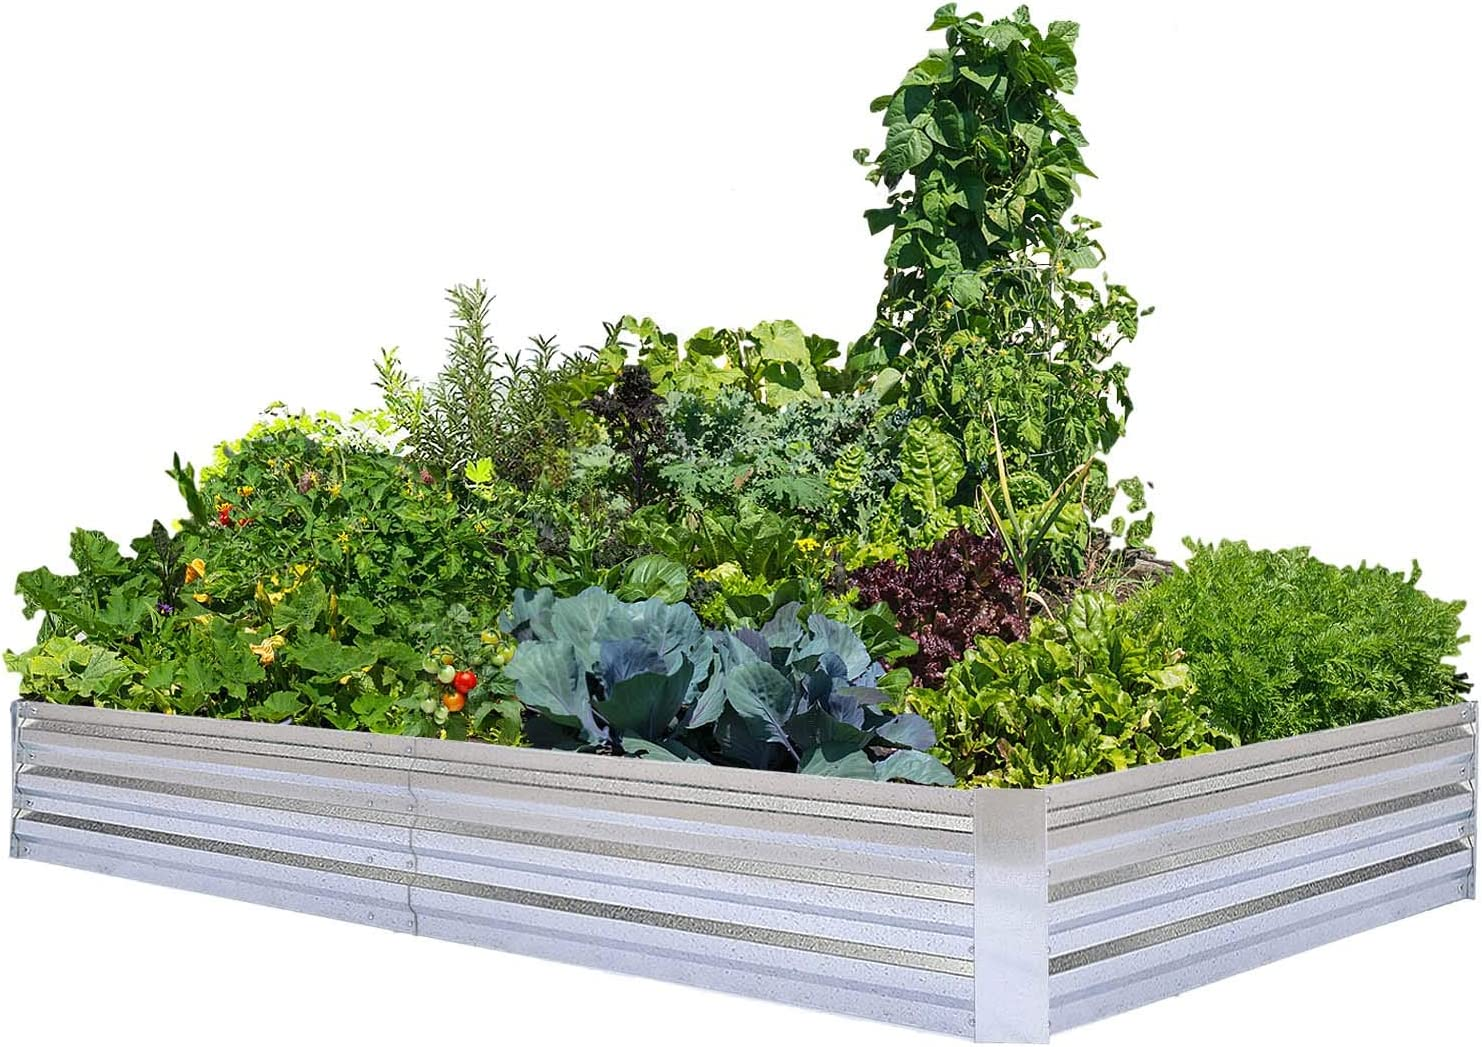 Special Campaign Bombing new work Galvanized Raised Garden Beds for Metal Planter Large Vegetables